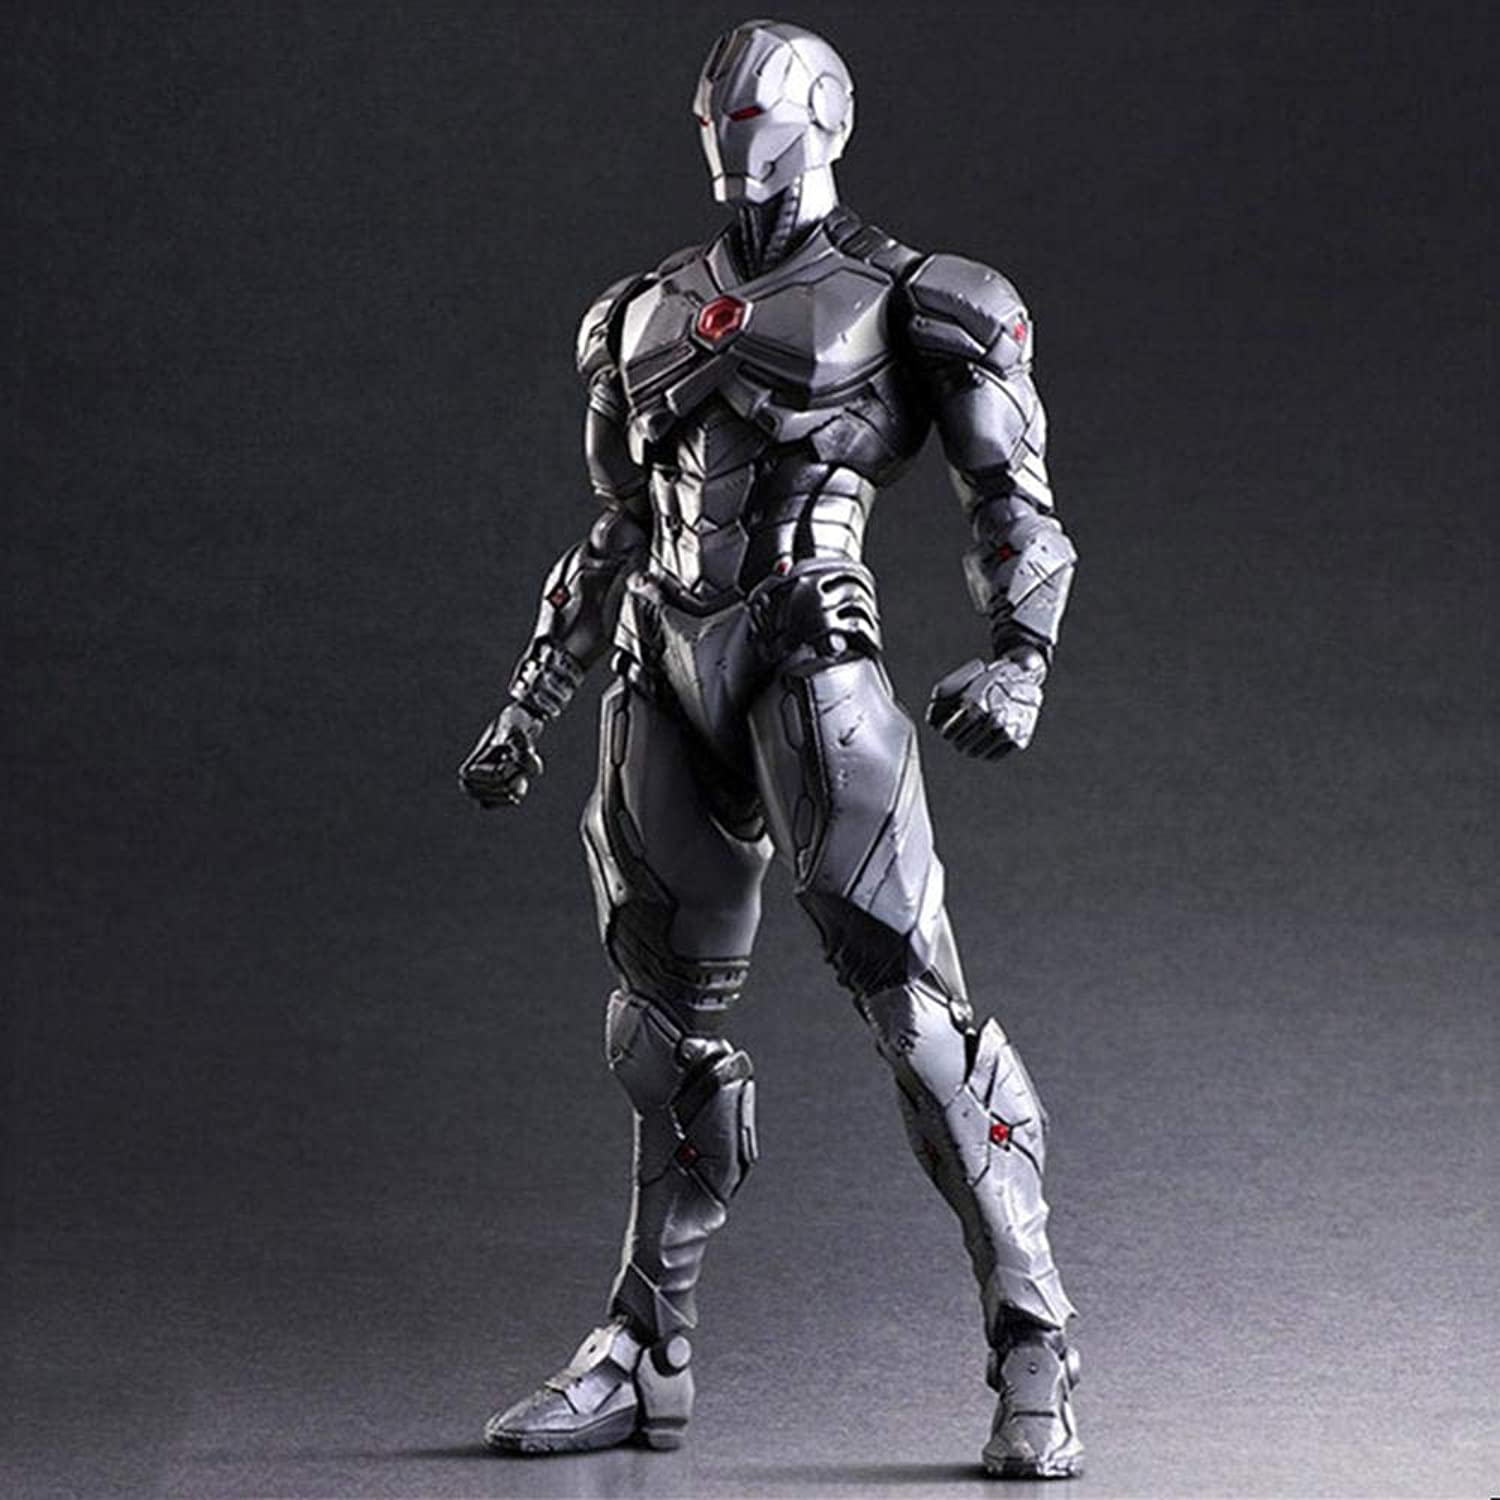 RLJqwad Marvel Heroes Avengers Iron Man-Modell Anime-Modell Iron Man-Spielzeugmodell Iron Man